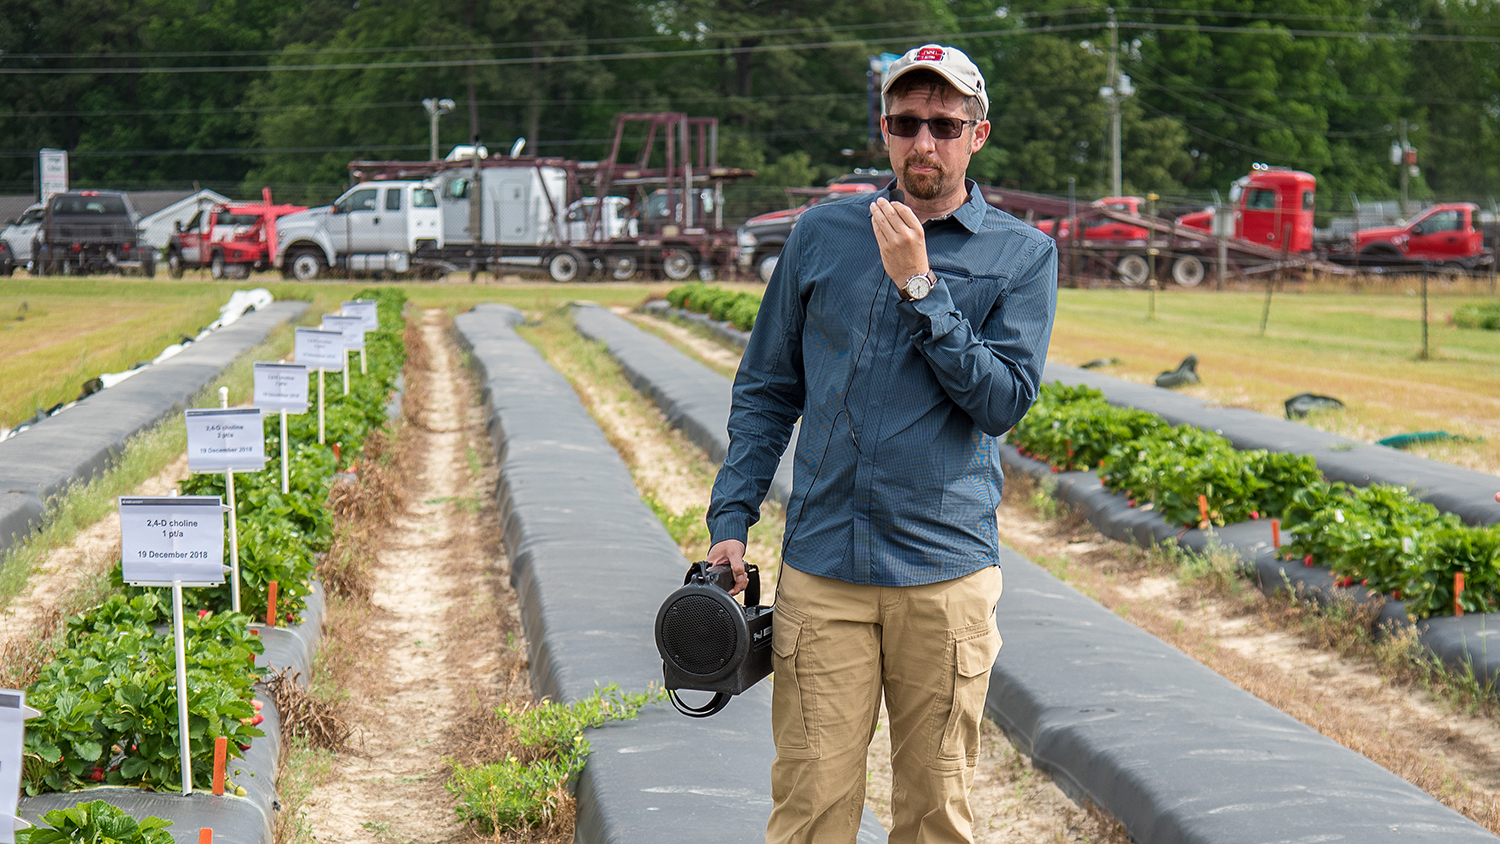 Man in farm field holding speaker and microphone.